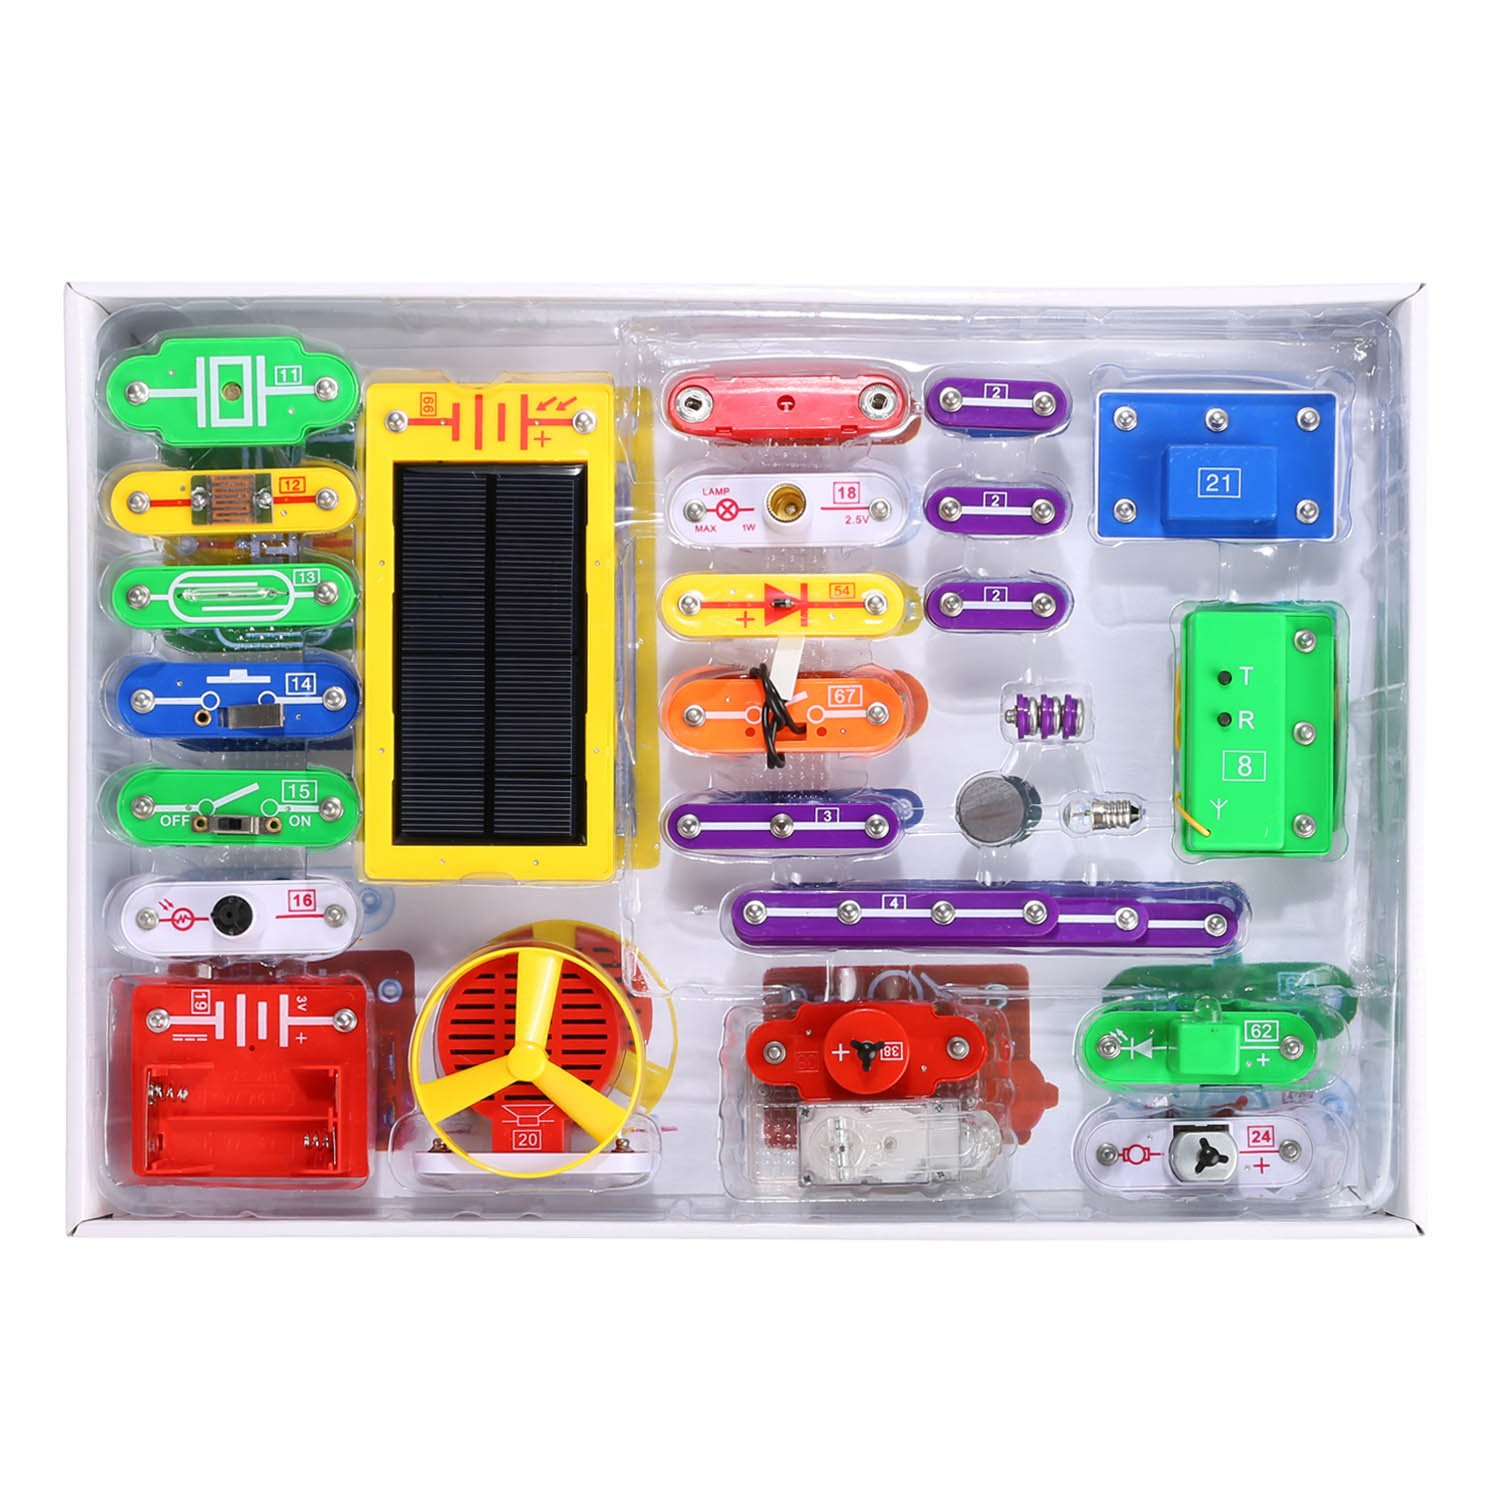 Anfan Electric Circuits Kit,Kids Electronics Exploration Kit,Solar Electronics Block Kit DIY Toy for Child (Type 2) by Anfan